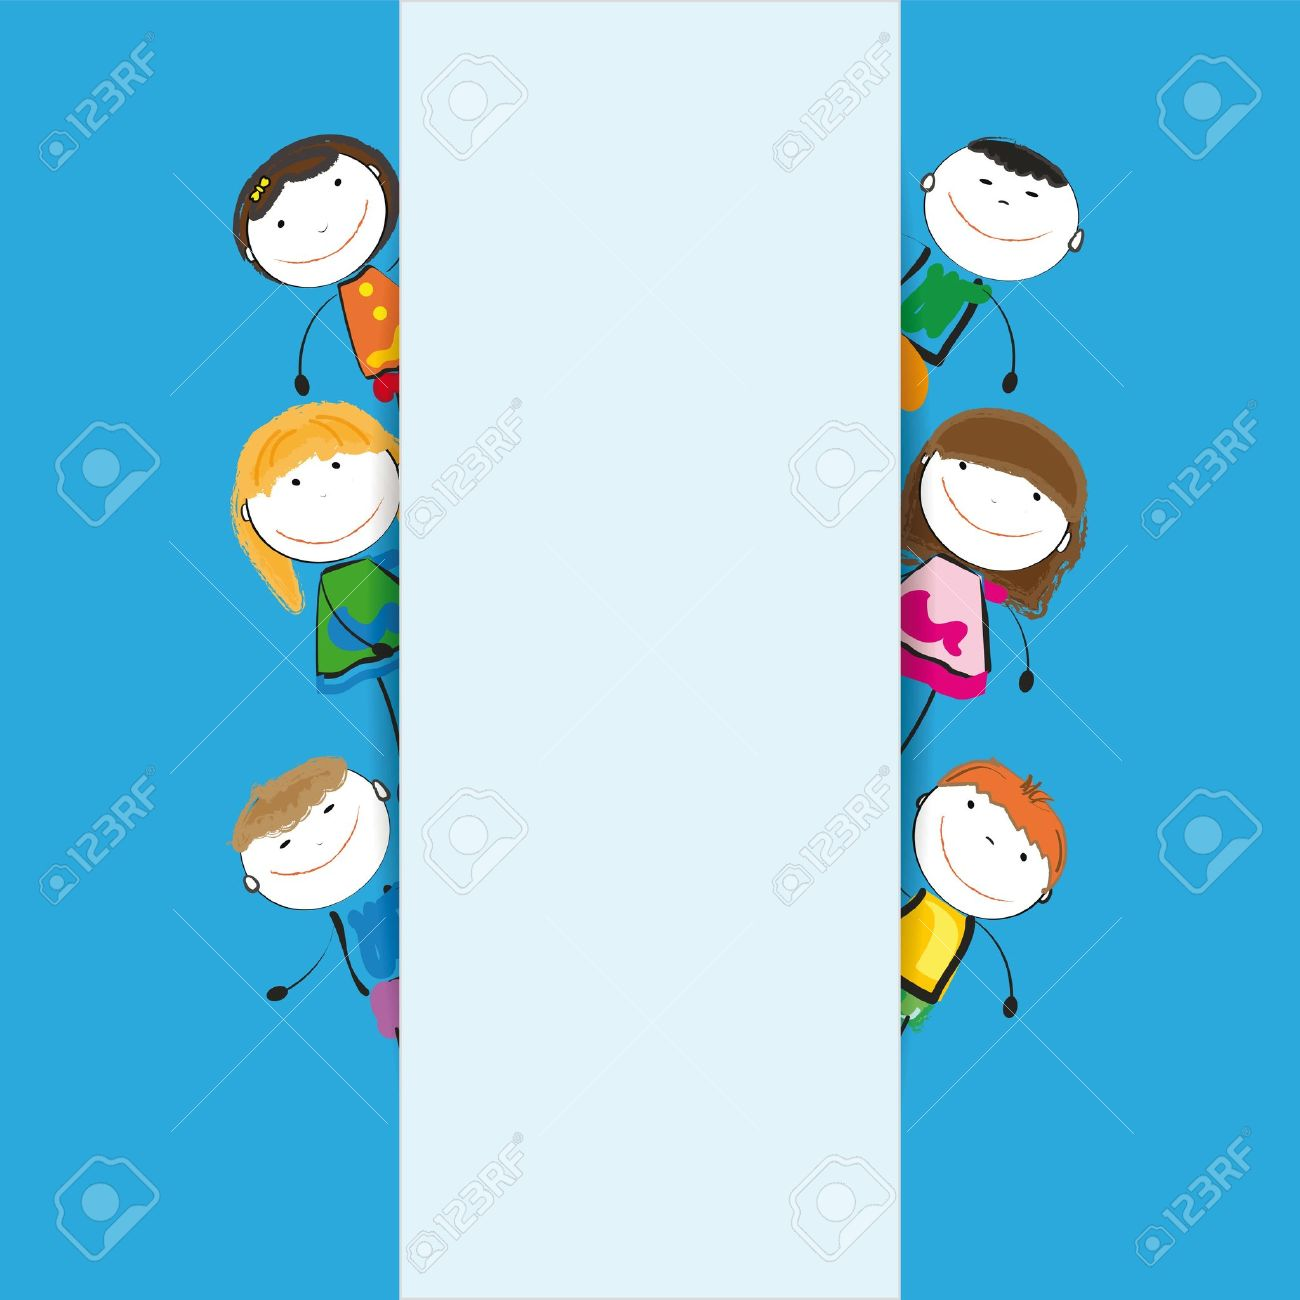 Small and smile kids with banner Stock Vector - 12747270